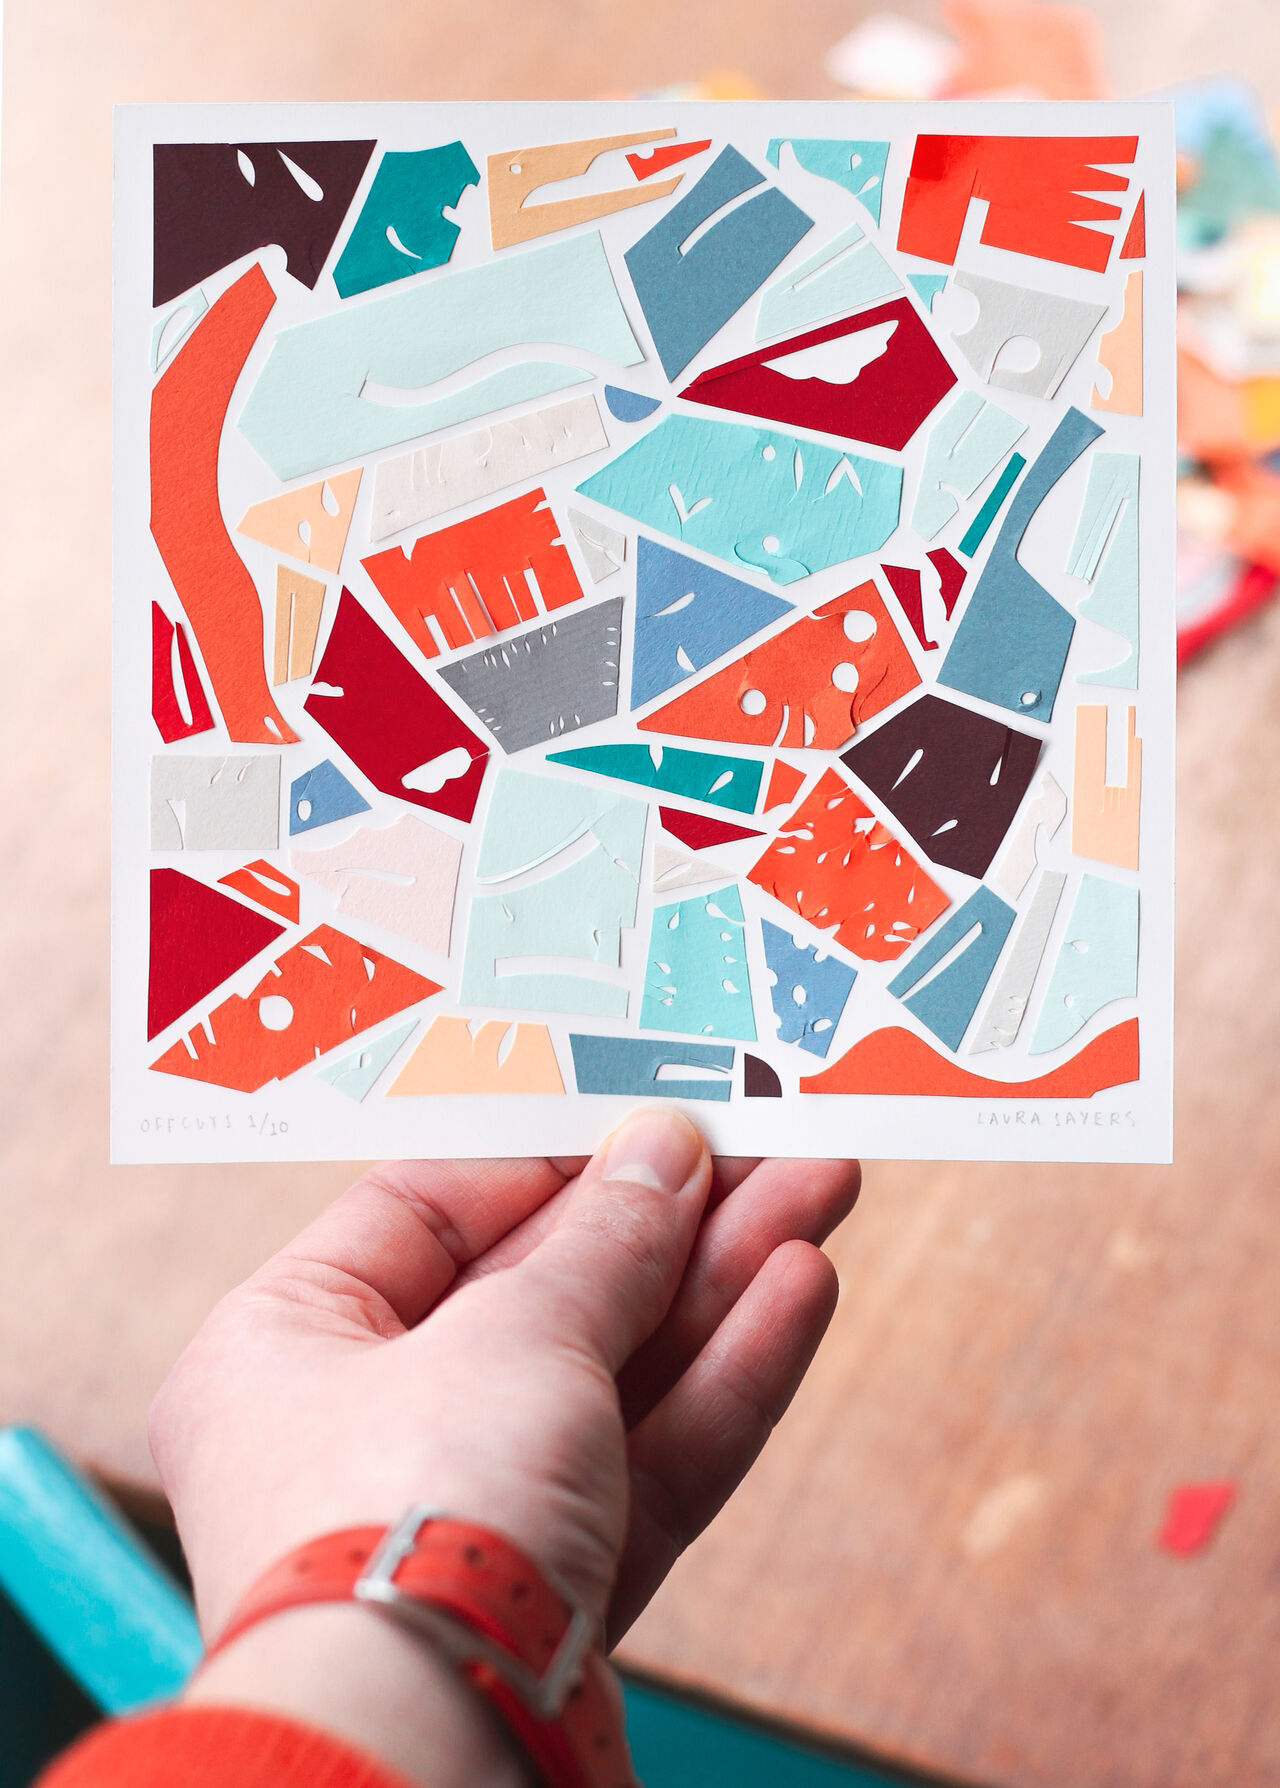 Photo of a hand holding a sheet of white paper on which are an amazing cluster of multi-coloured paper cut outs in abstract shapes and patterns.